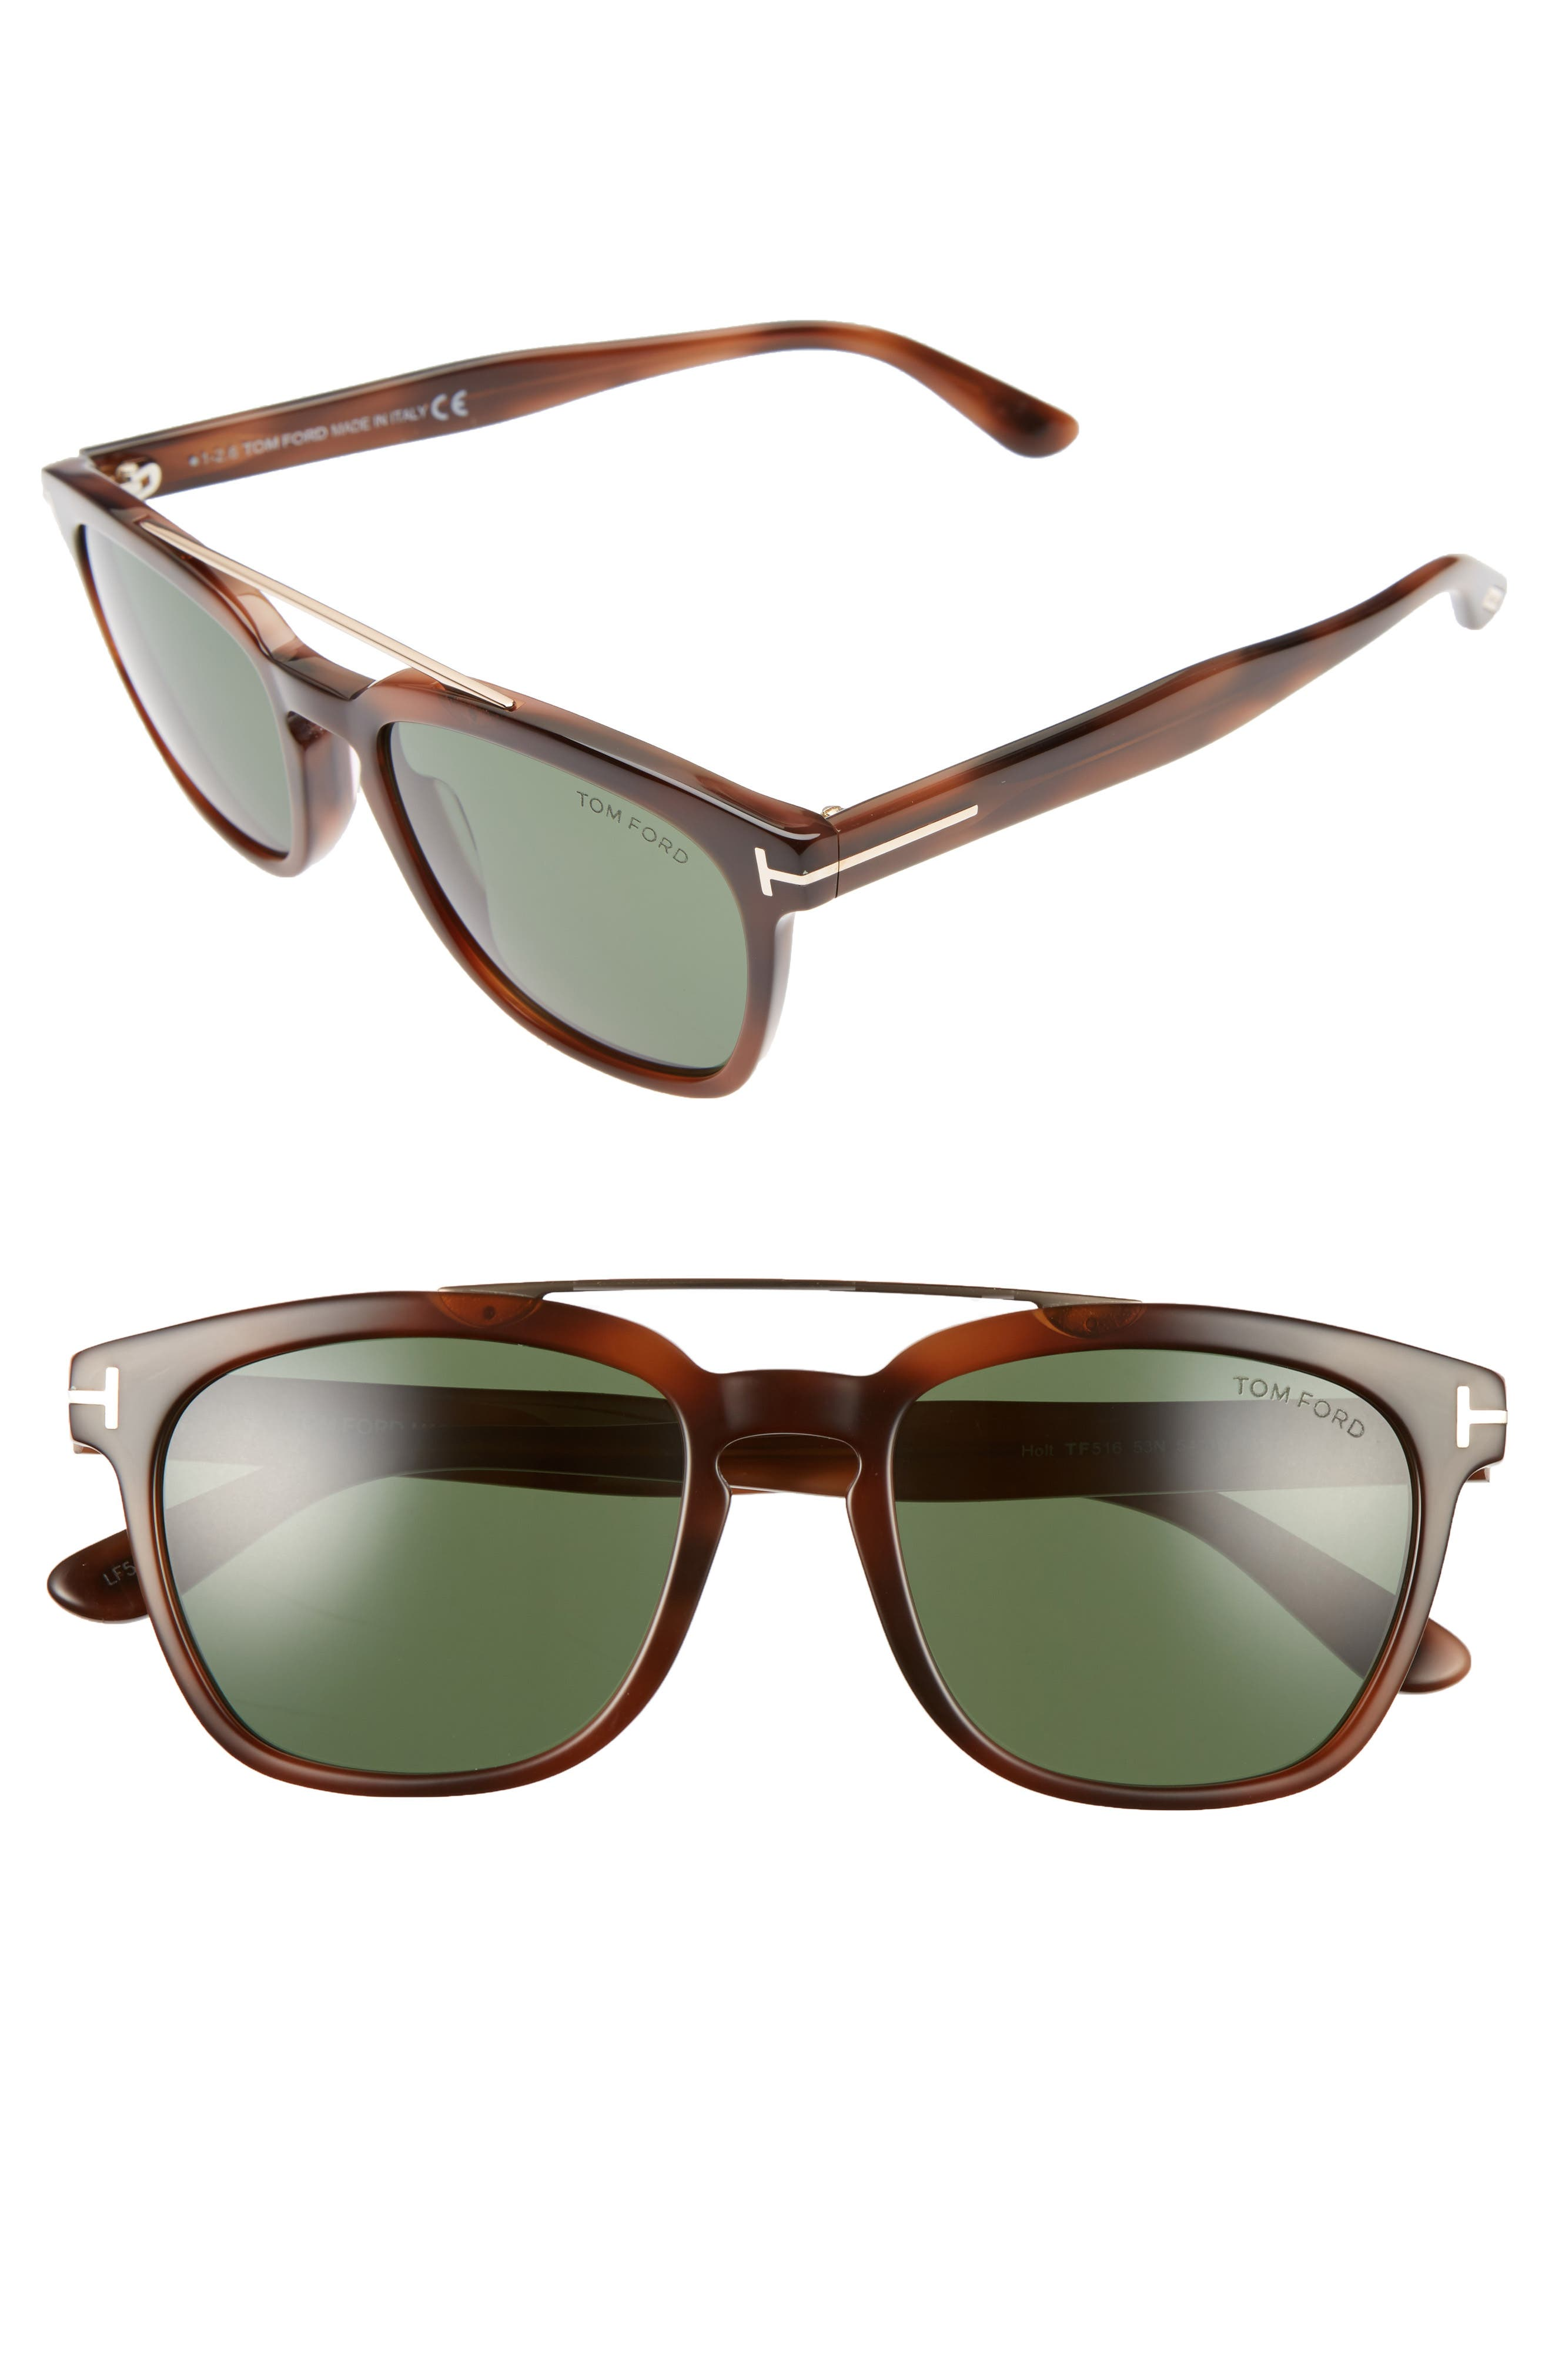 54mm Double Brow Bar Sunglasses,                         Main,                         color, Blonde/ Rose Gold/ Green